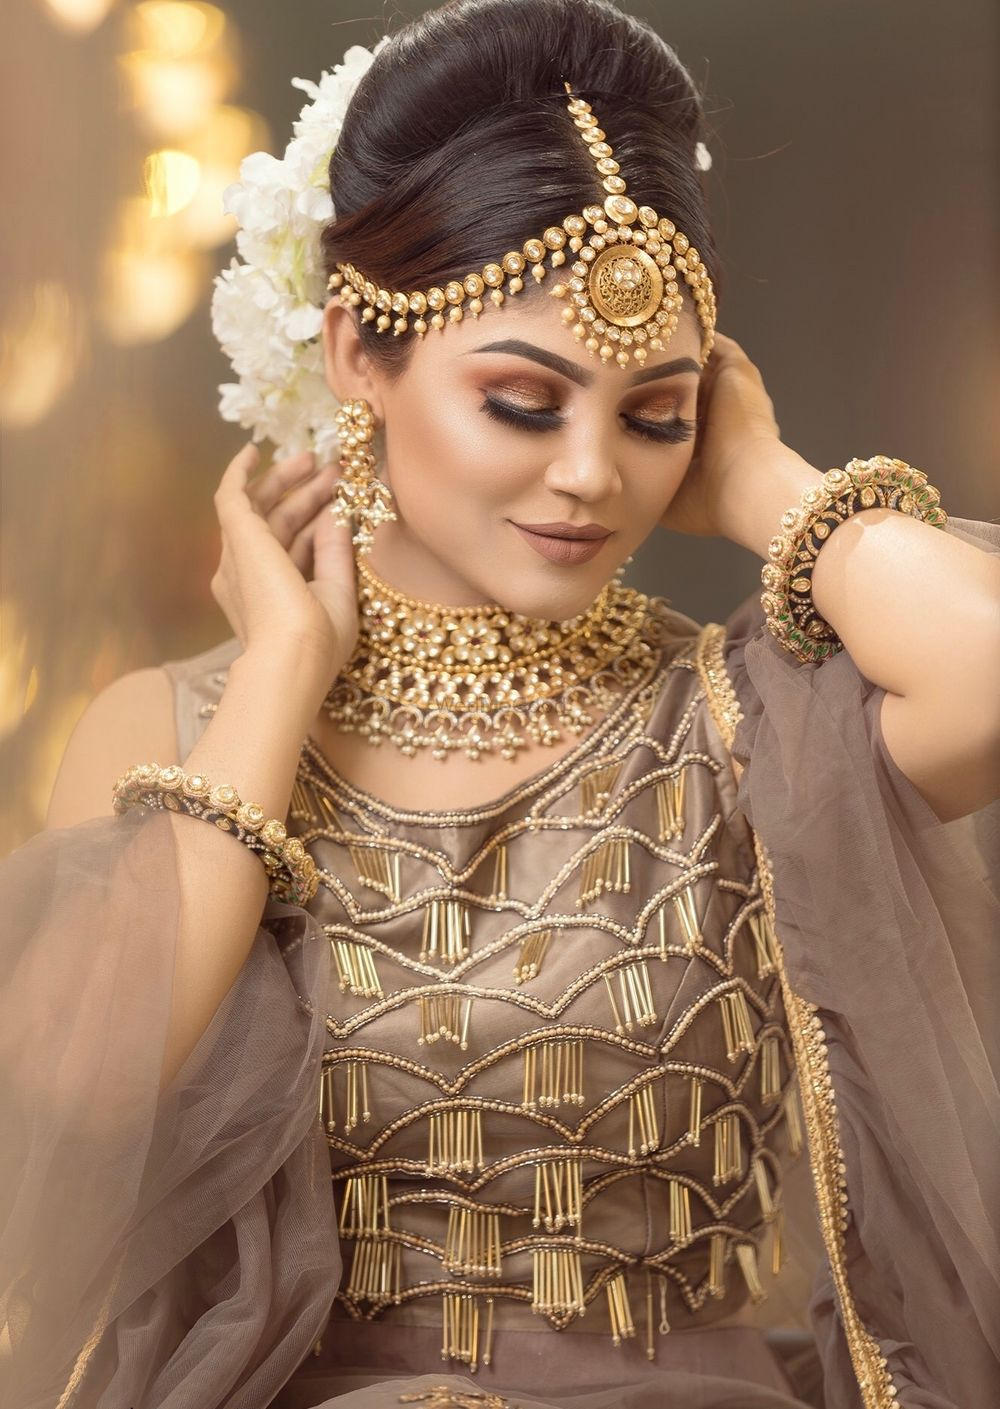 Photo From North indian wedding and wedding shoot - By Makeup Mistress